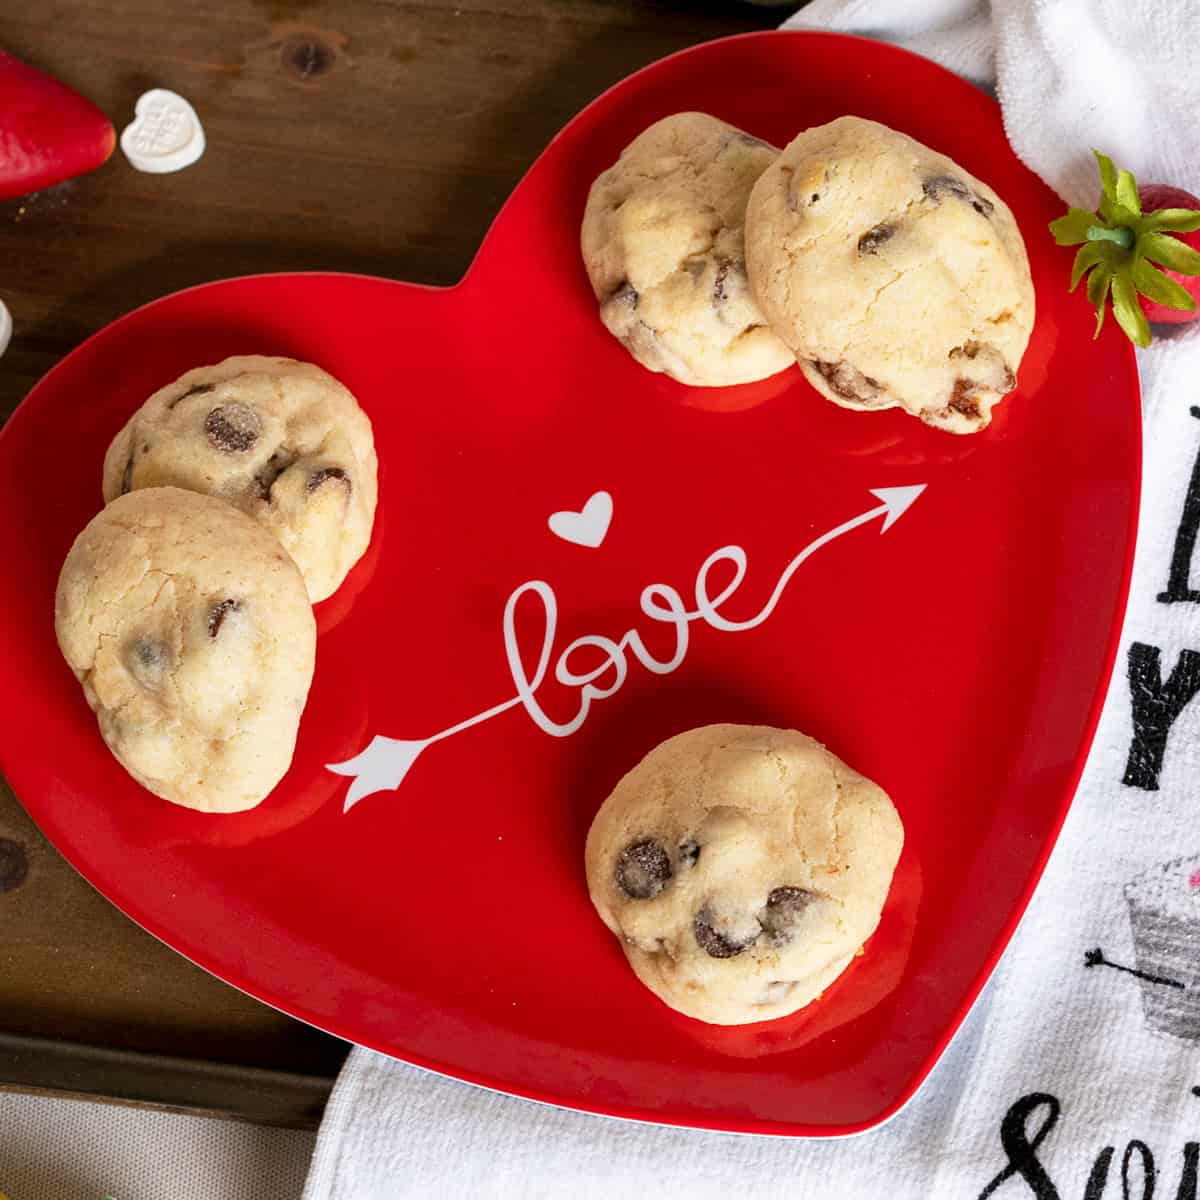 Chocolate chip and strawberry cookies sitting on a red plate with Love written across it for Valentine's Day.